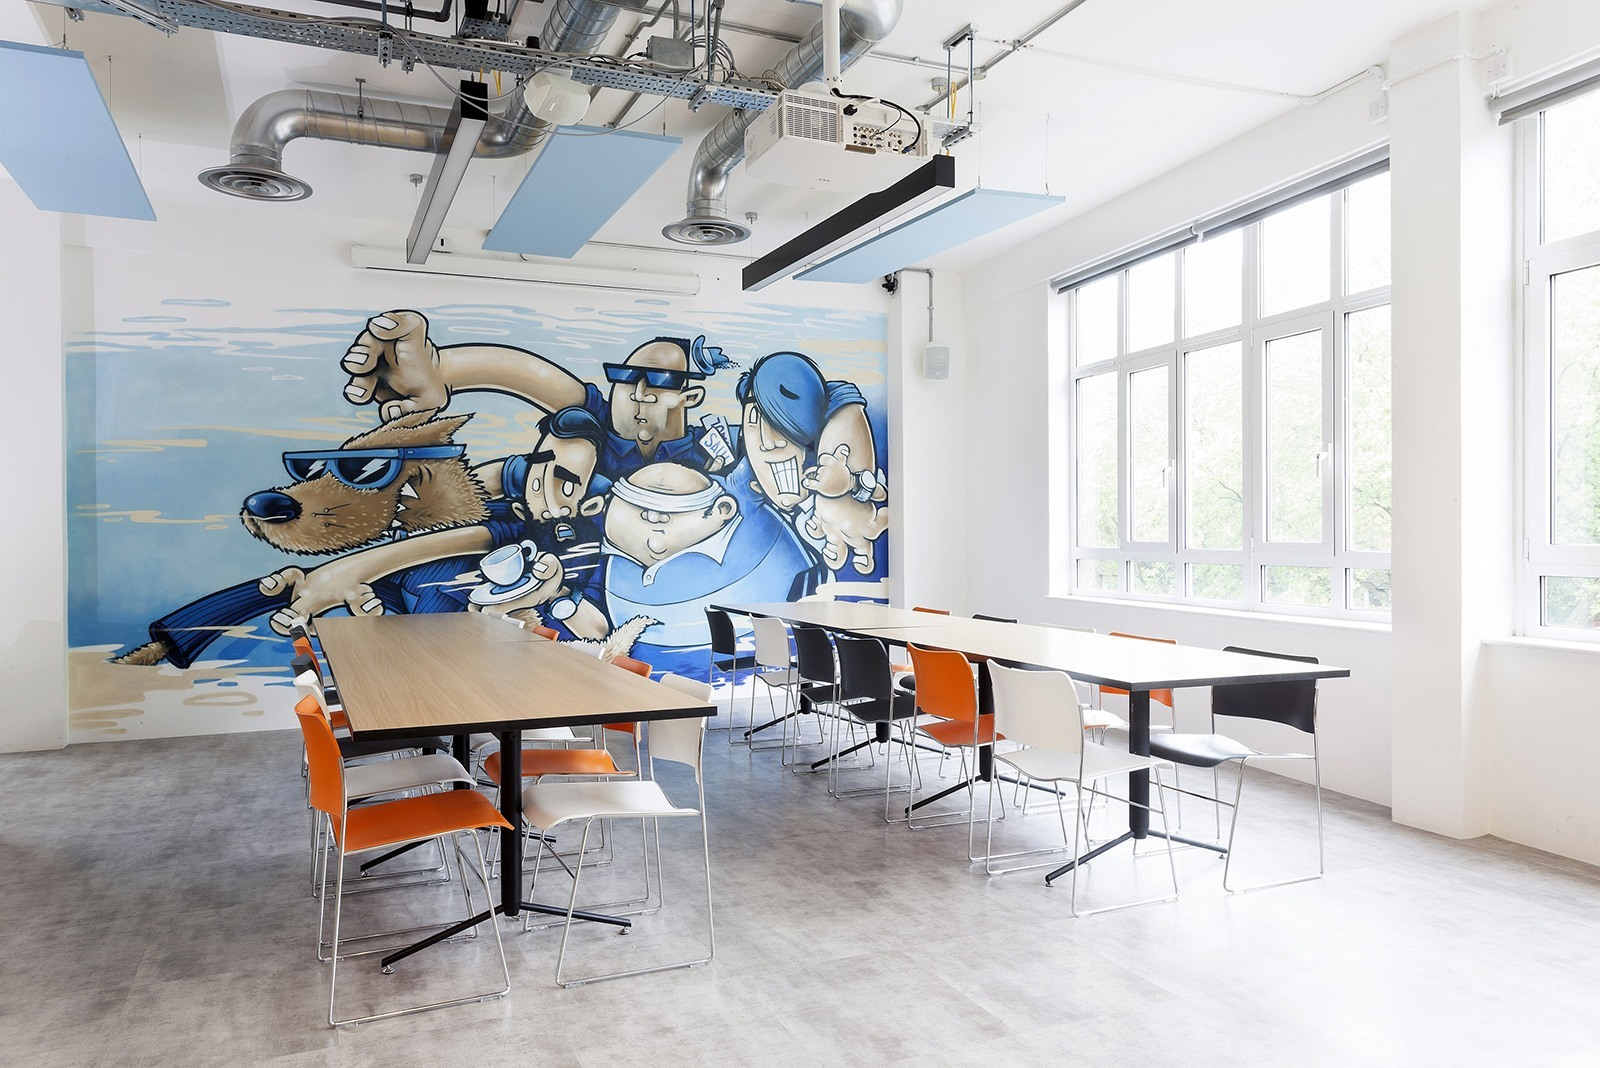 stack-exchange-london-office-4